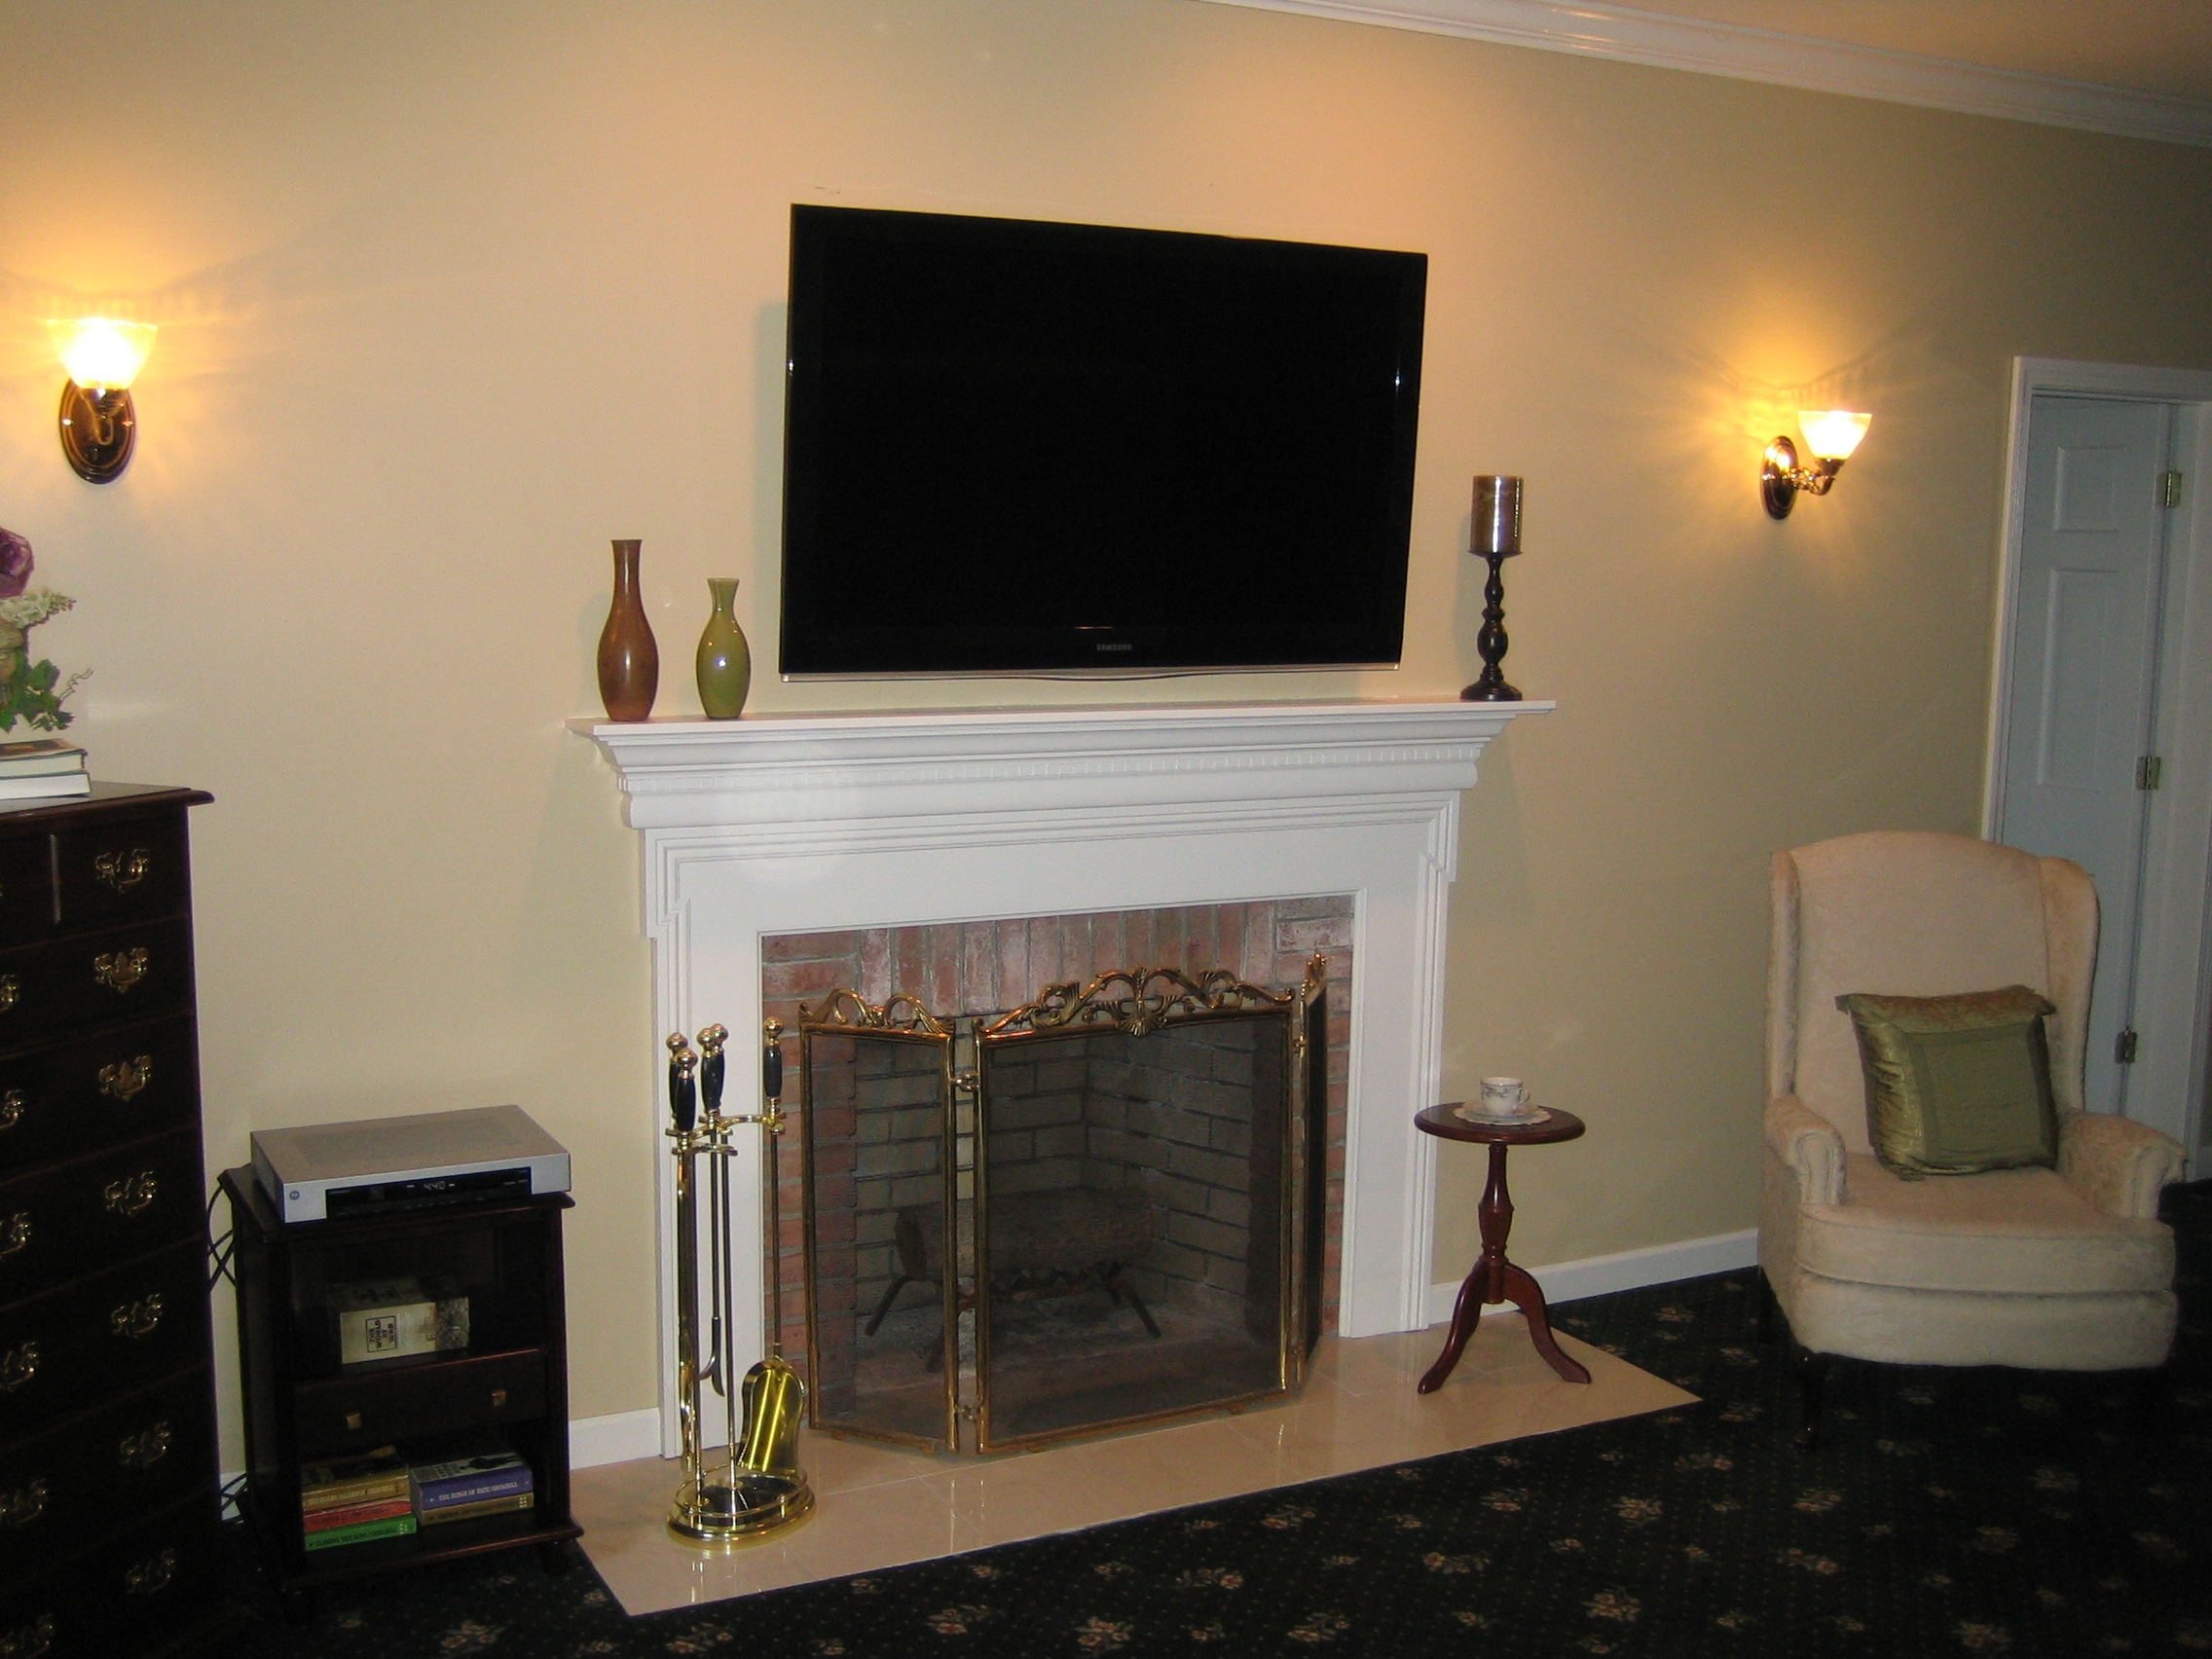 wall mount tv over fireplace ideas wall mount tv over fireplace ideas awesome clinton ct mount tv above fireplace home theater installation tv